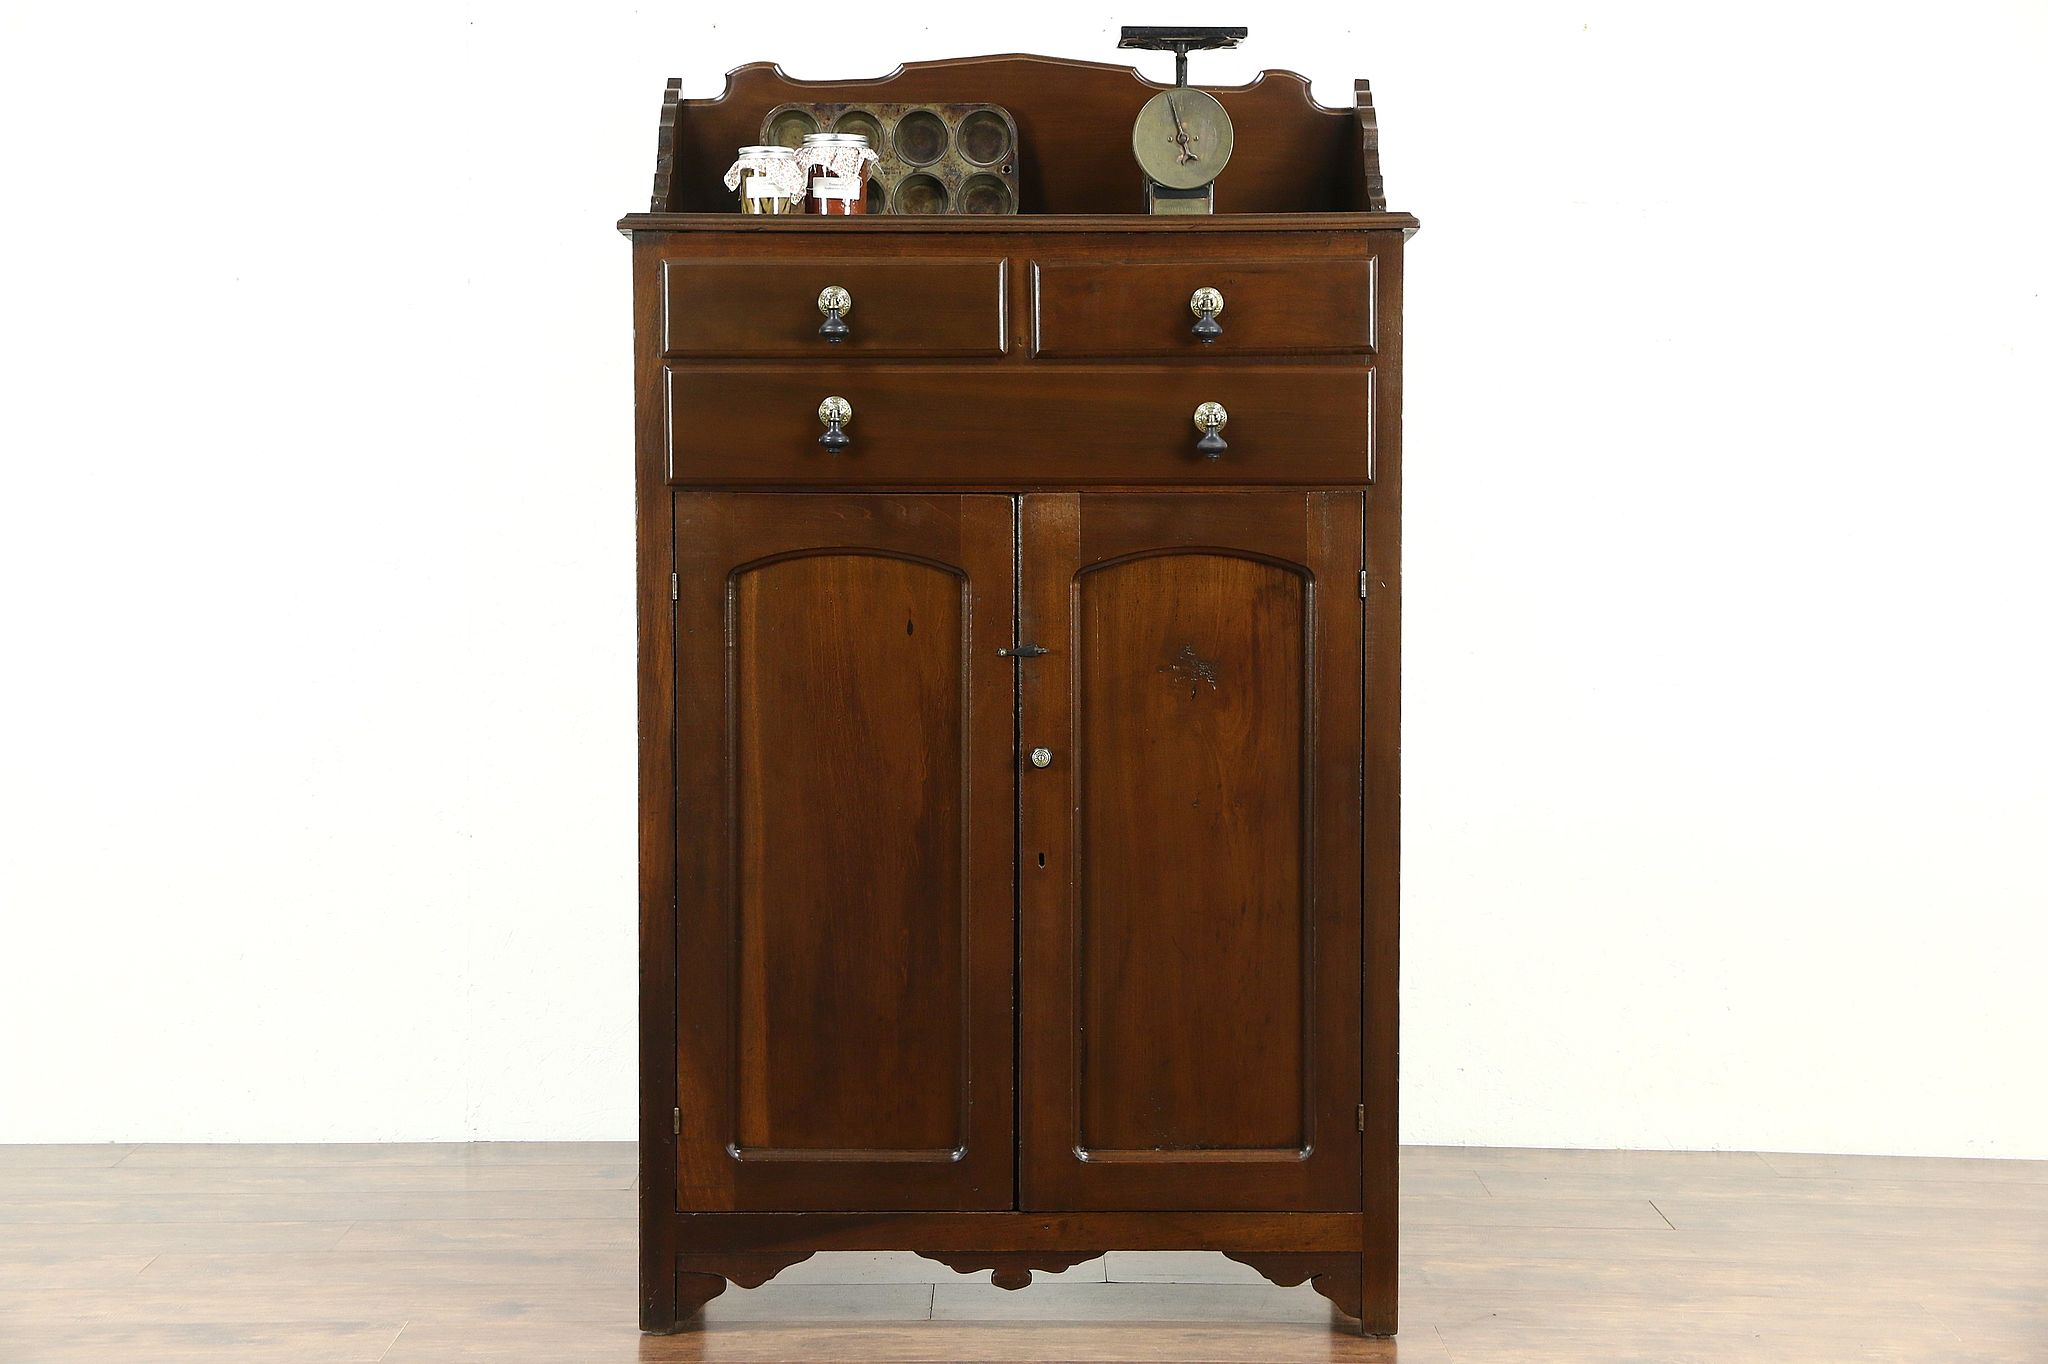 Victorian 1890 Antique Kitchen Pantry Jelly Cupboard